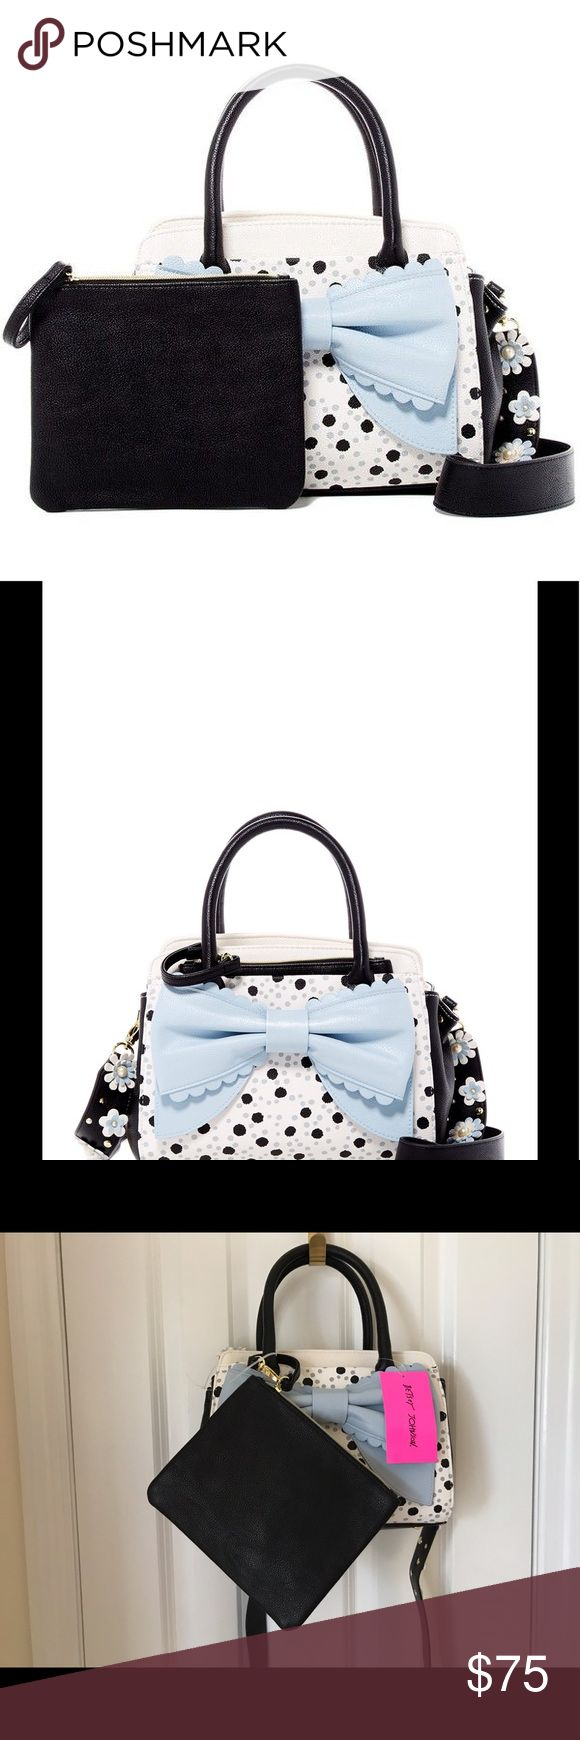 "Betsey Johnson Guitar Strap Spot Satchel NWT Betsey Johnson New With Tags Guitar Strap Satchel. The Front Has Large Baby Blue Bow Appliqué. Detachable Shoulder Strap Features Blue And White Flowers With Faux Pearls. Dual Top Handles. Fold over Strap With Magnetic Closure.The Exterior Features 2 Slip Pockets And 1 Detachable Clutch. Interior Features 1 Center Divider Zip Pocket, 1 Zip Pocket And 2 Slip Pockets. Approximately 8""H X 10"" W X 4.5"" D. Approx. 5"" Handle Drop, 22"" Strap Drop…"